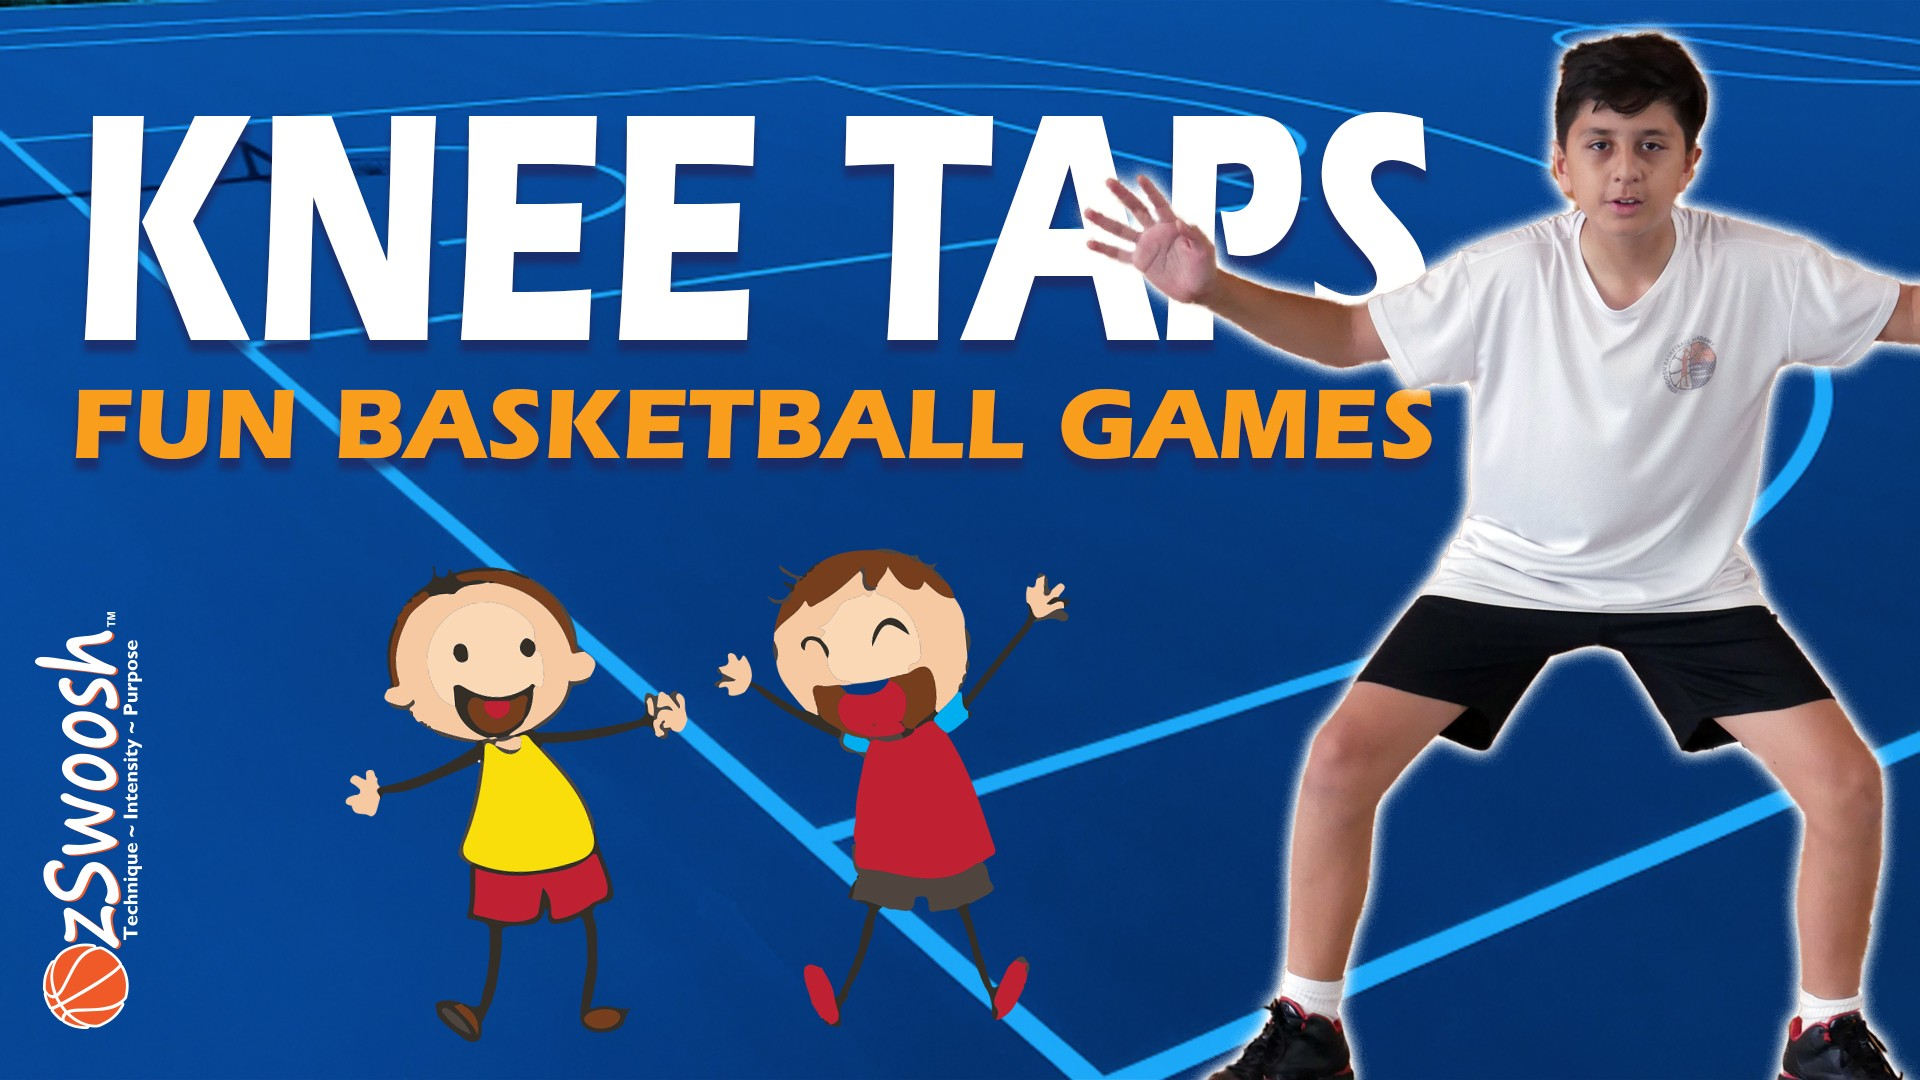 fun defensive basketball drill for kids - knee taps